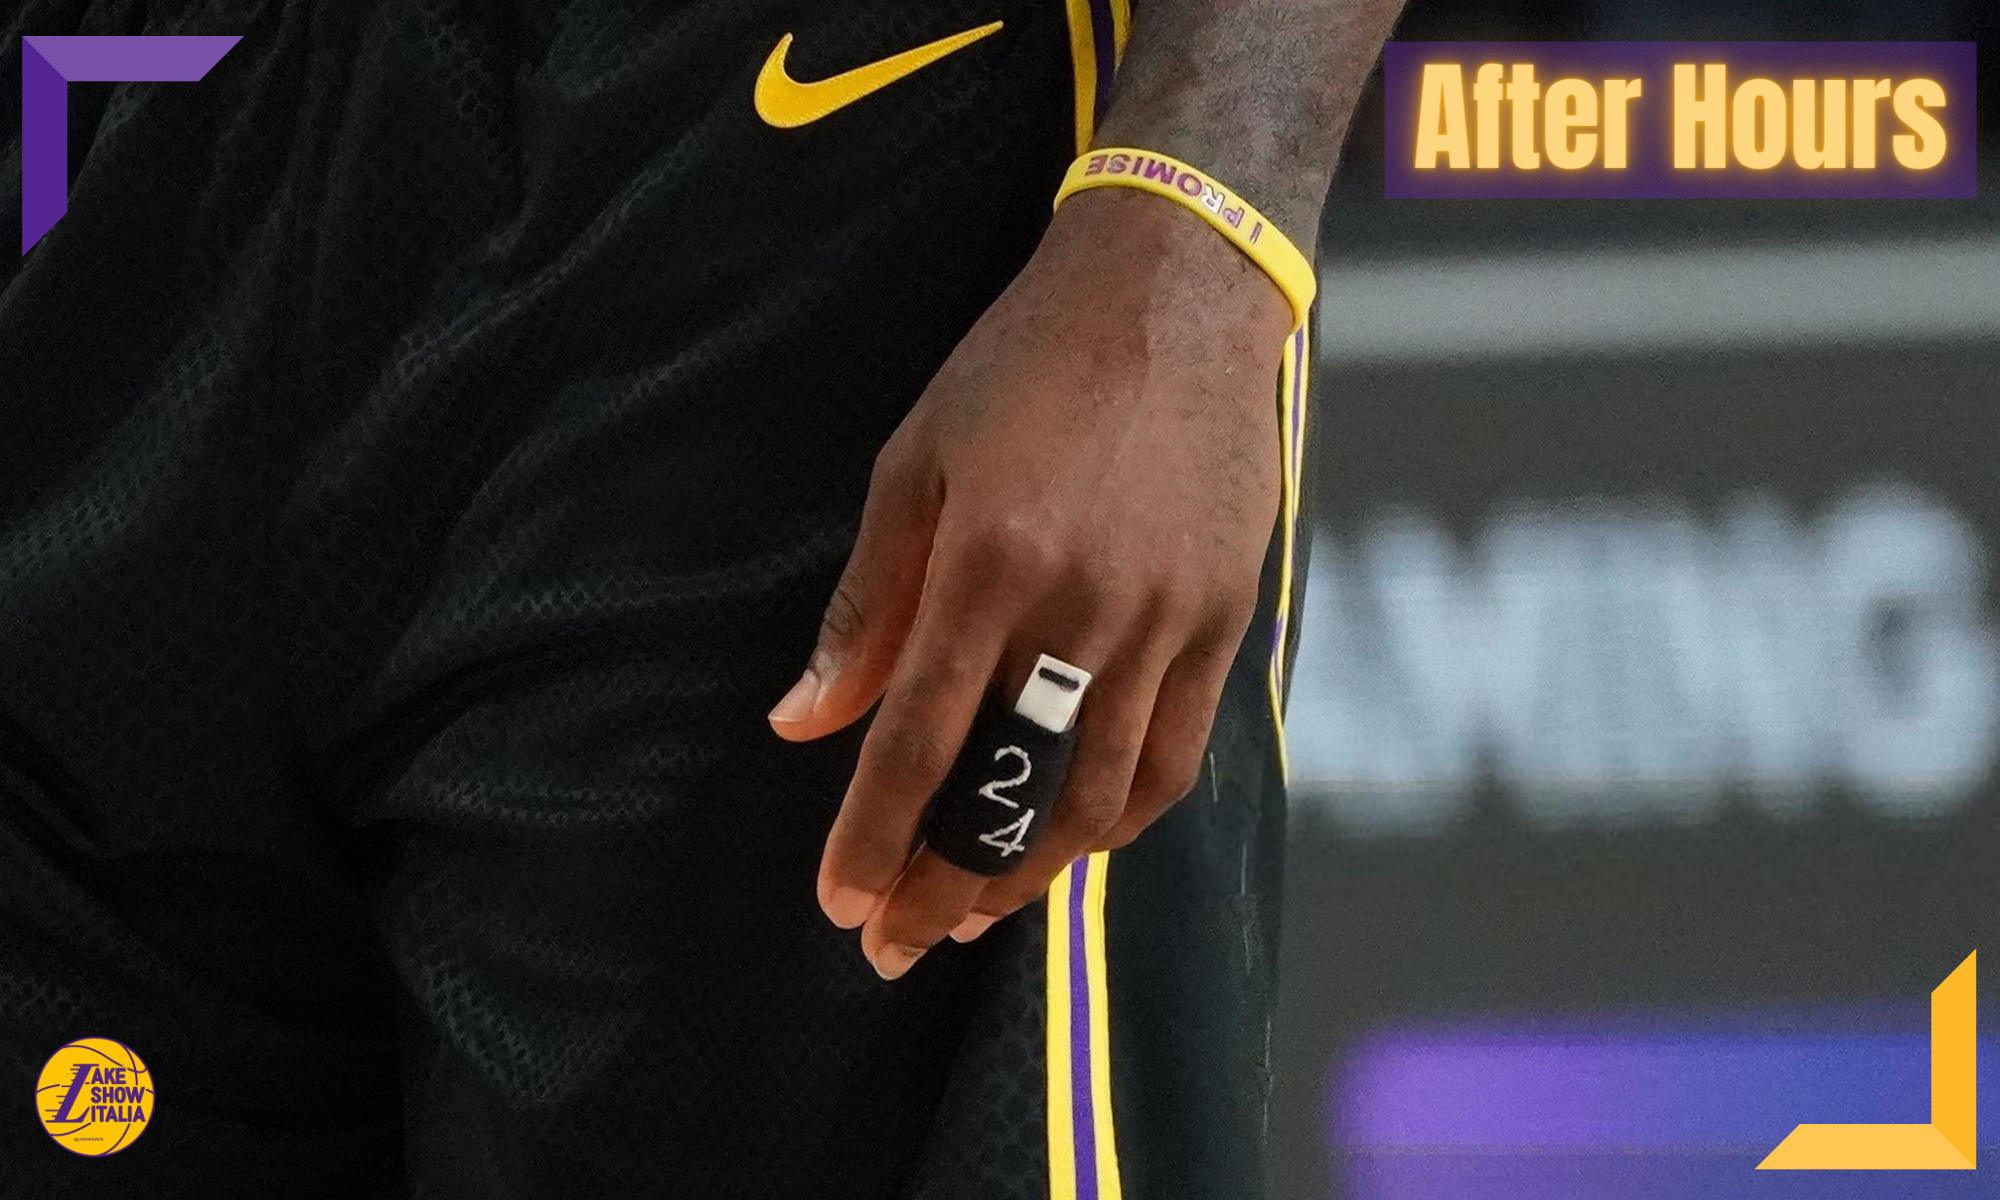 ORLANDO, FL - AUGUST 24: Finger band worn by LeBron James #23 of the Los Angeles Lakers during Round One, Game Four of the NBA Playoffs on August 22, 2020 at AdventHealth Arena in Orlando, Florida. NOTE TO USER: User expressly acknowledges and agrees that, by downloading and/or using this Photograph, user is consenting to the terms and conditions of the Getty Images License Agreement. Mandatory Copyright Notice: Copyright 2020 NBAE